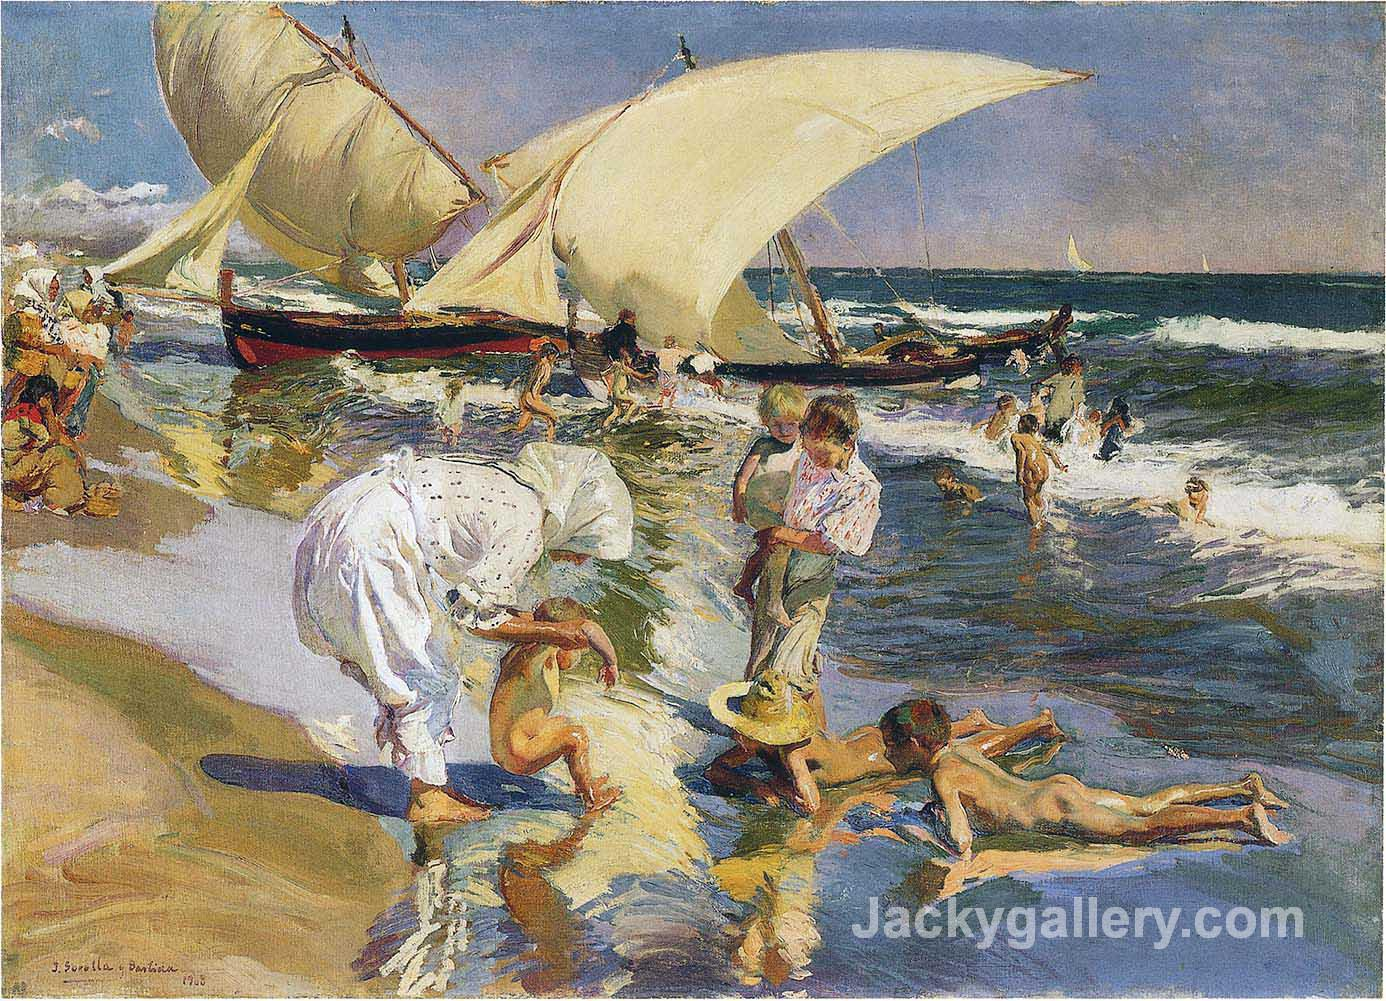 Valencia beach in the morning light by Joaquin Sorolla y Bastida paintings reproduction